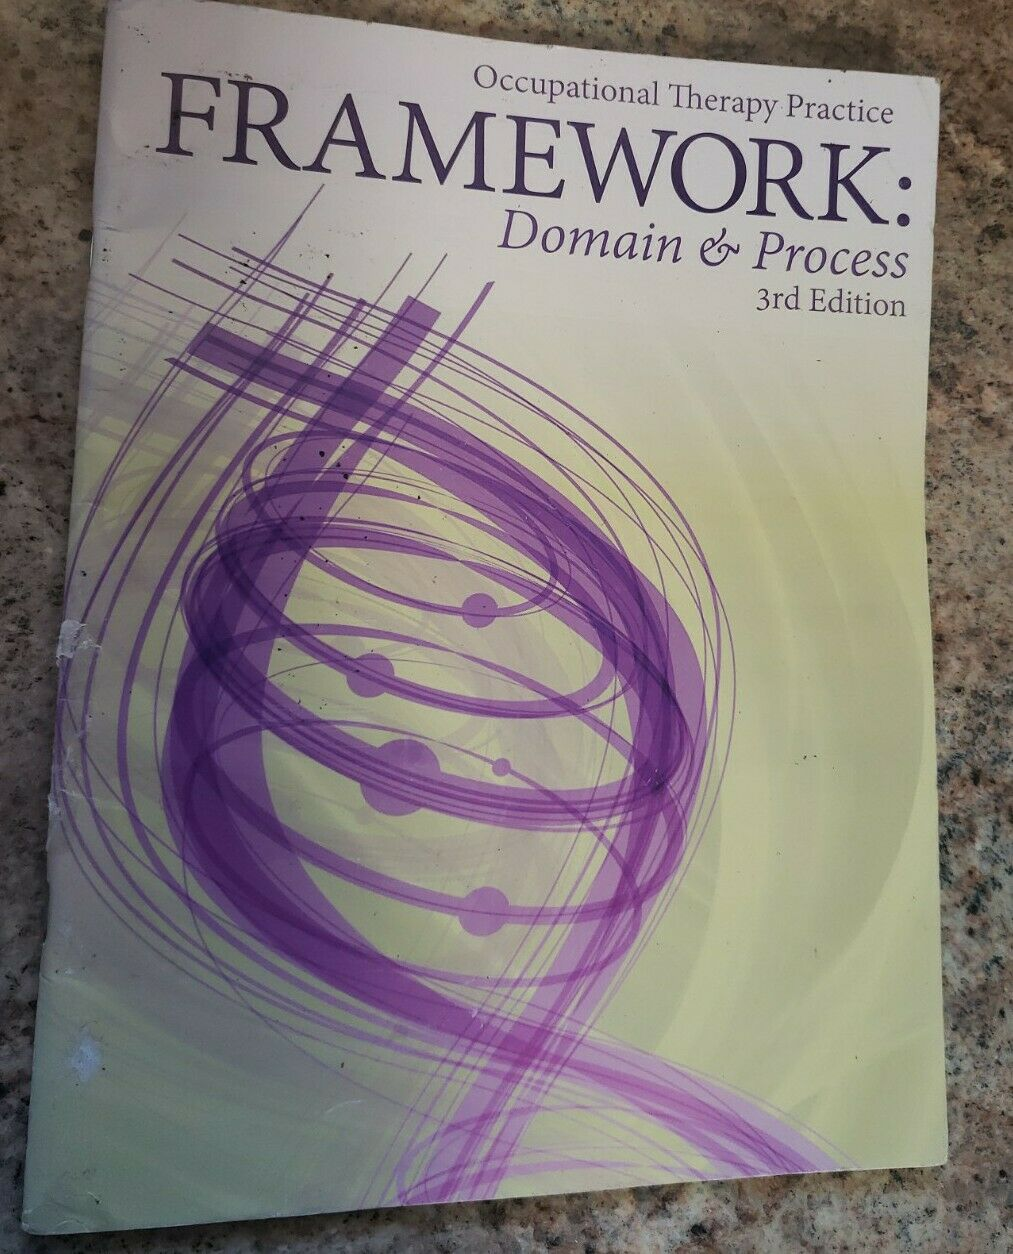 Occupational Therapy Practice Framework Domain And Process Trade Paperback For Sale Online Ebay